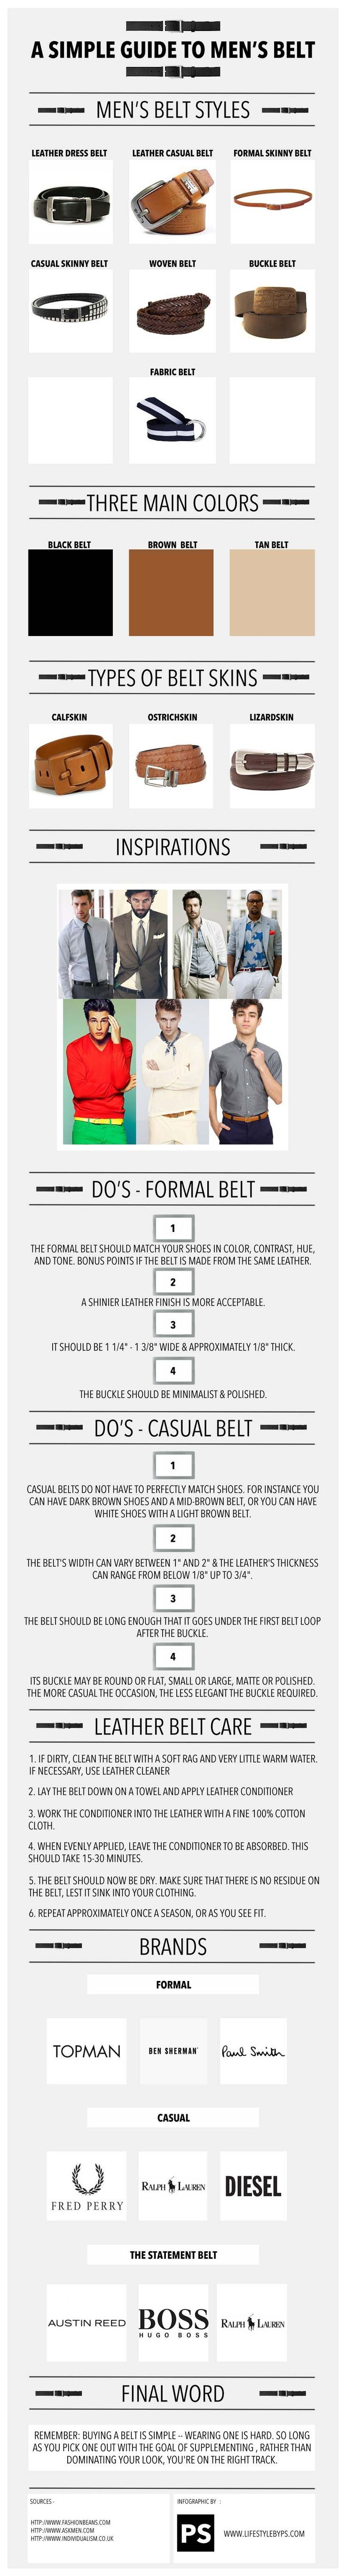 A Simple Guide to Men's Belt - Infographic: